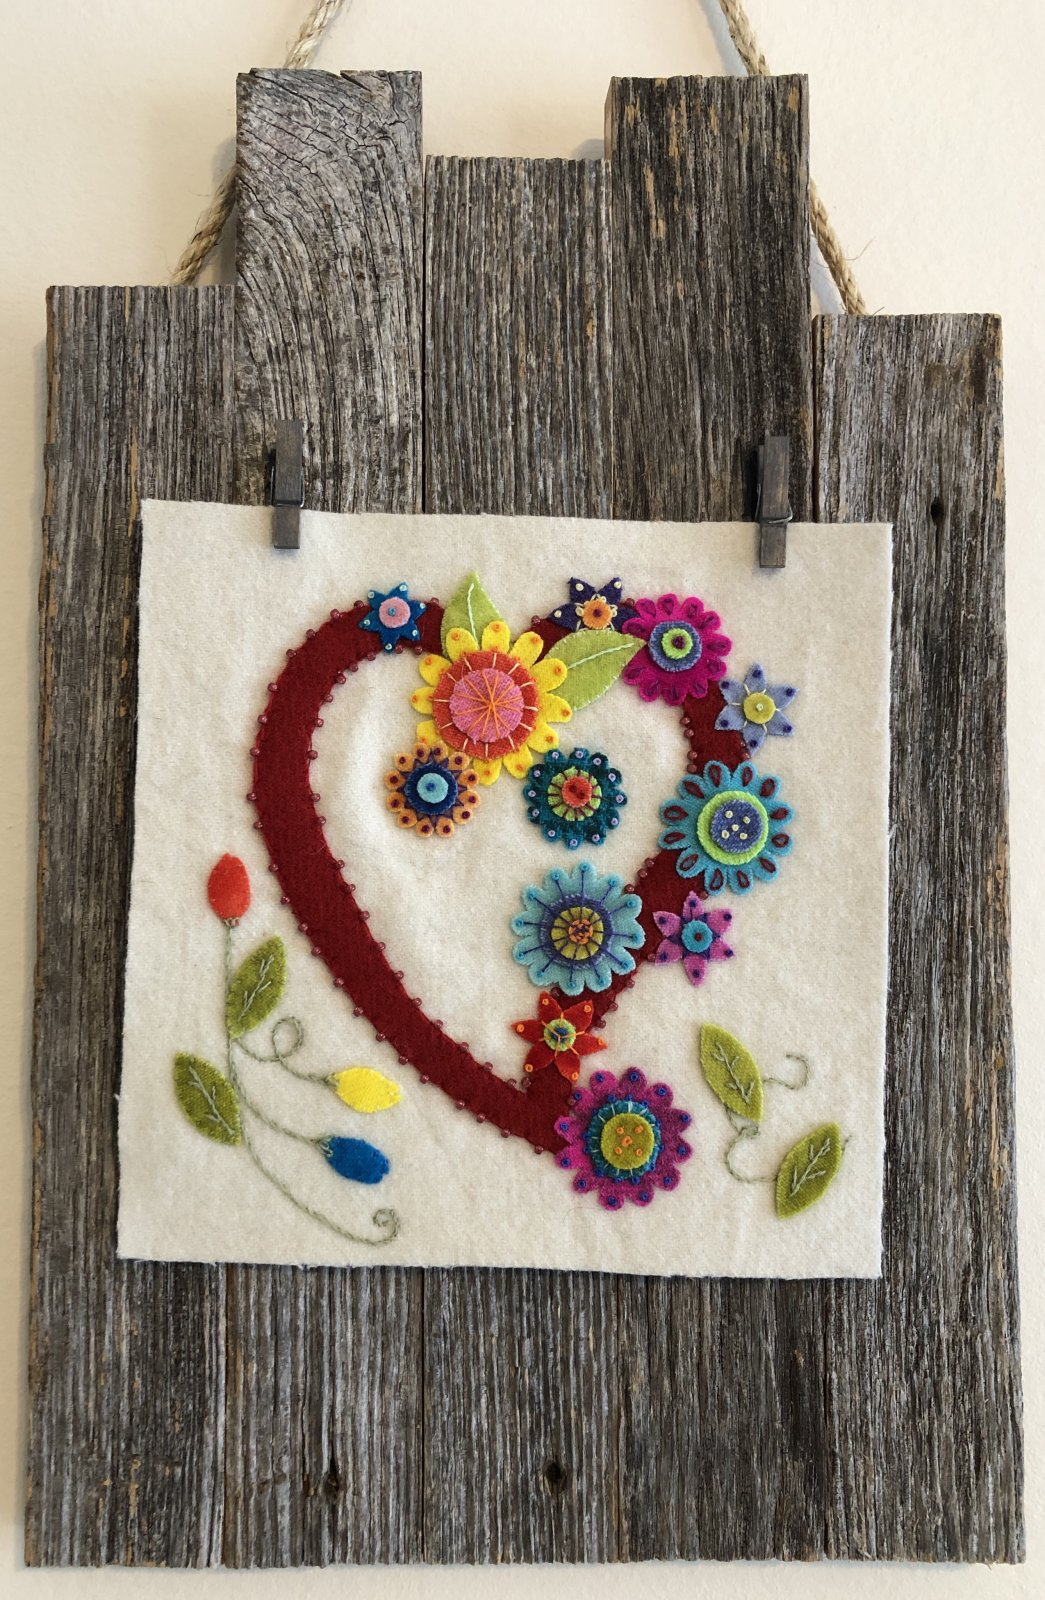 Blooming Heart Wool kit and Wood Hanger